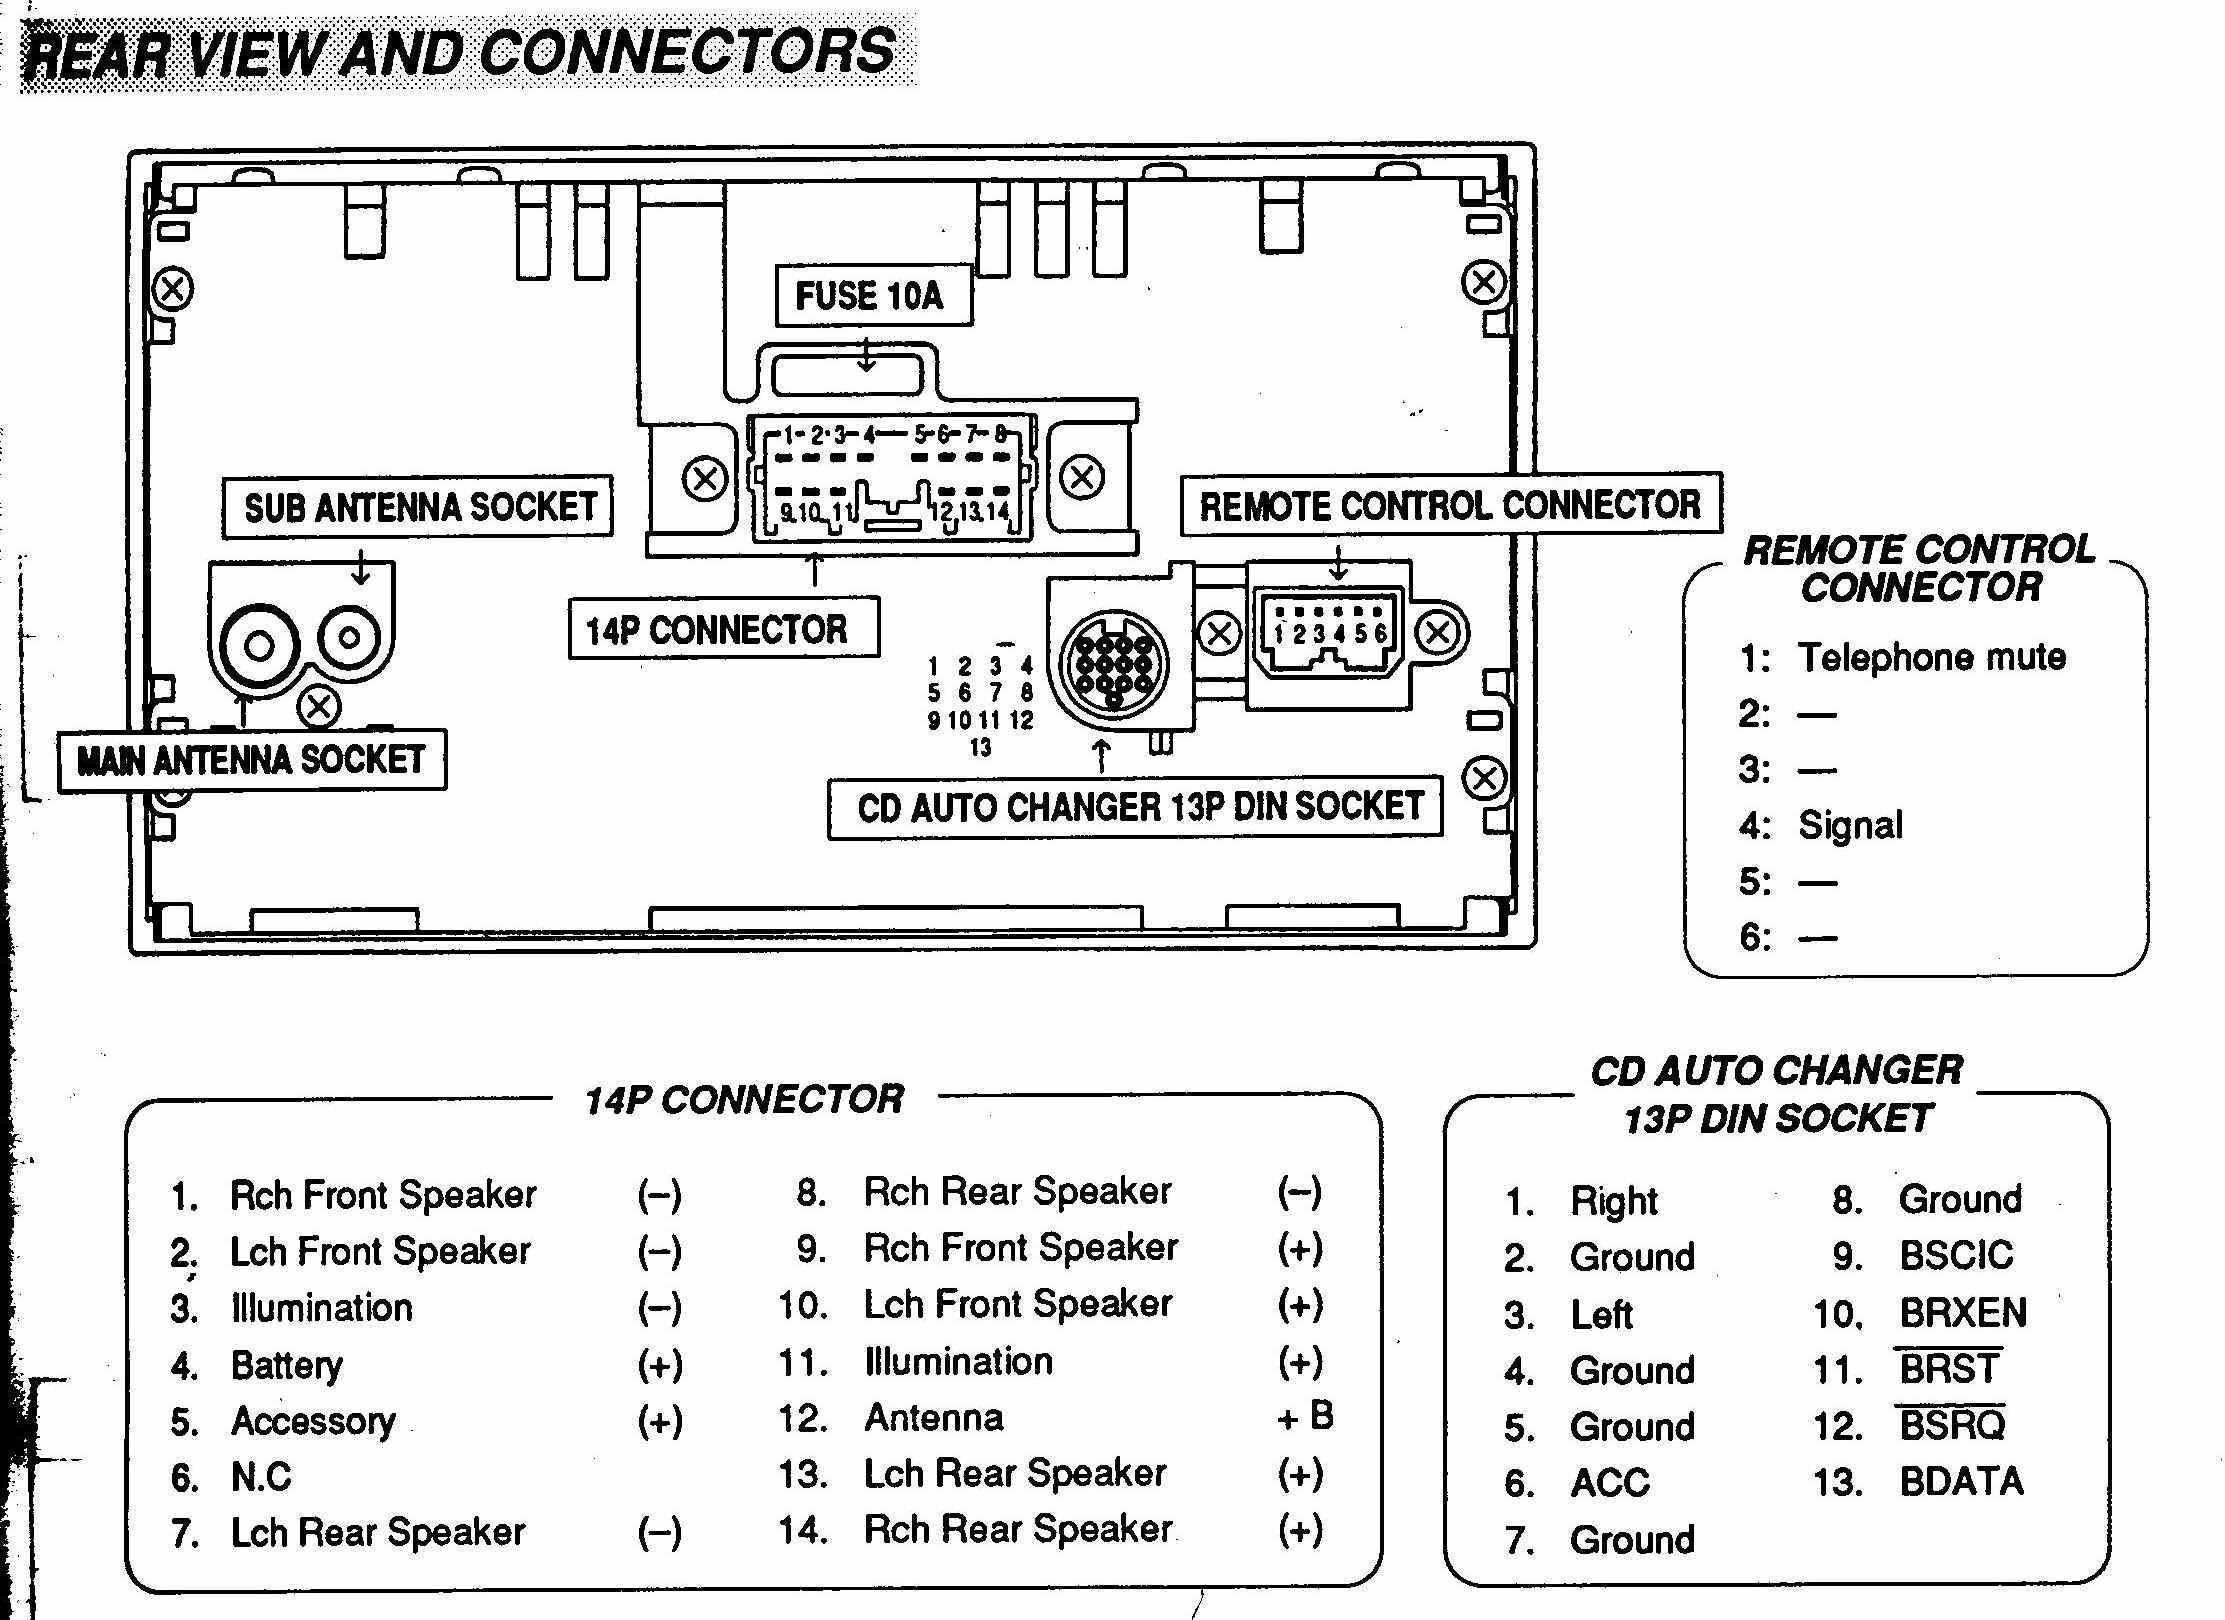 2006 Harley Davidson Radio Wiring Diagram | Wiring Liry on